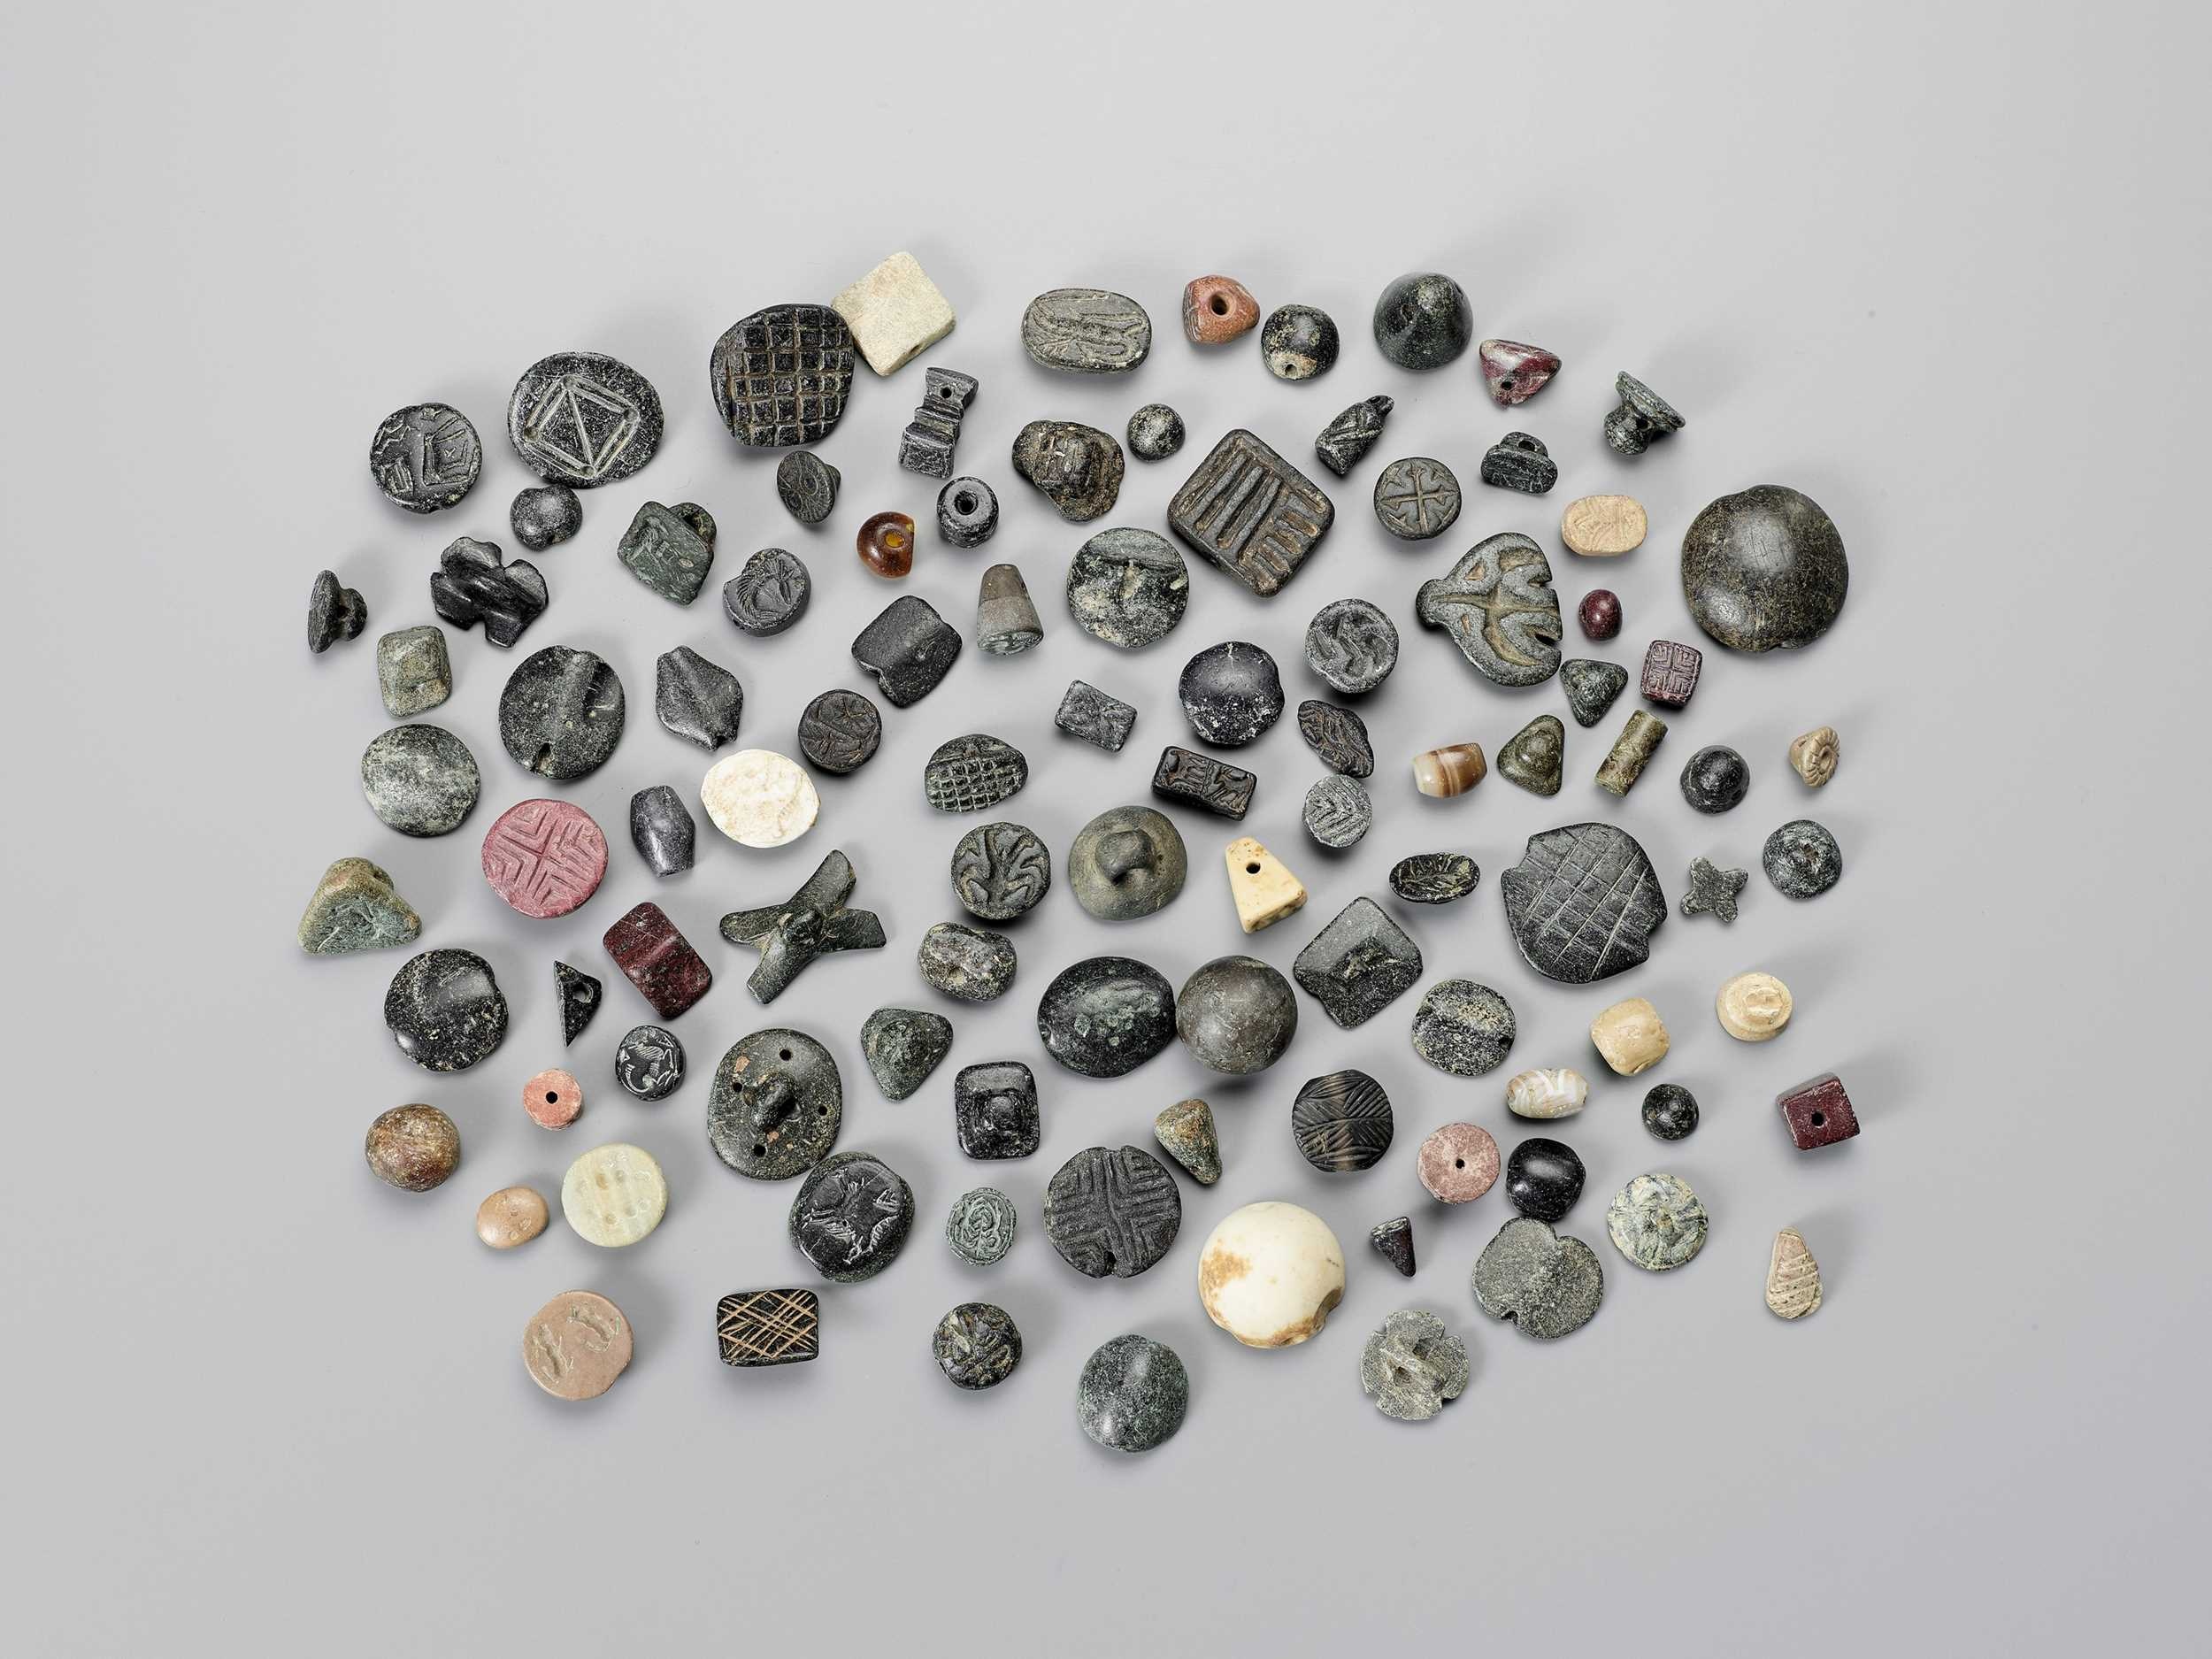 Lot 1333 - AN AMAZING COLLECTION OF 101!!! NEAR EAST ANCIENT SEALS AND BEADS